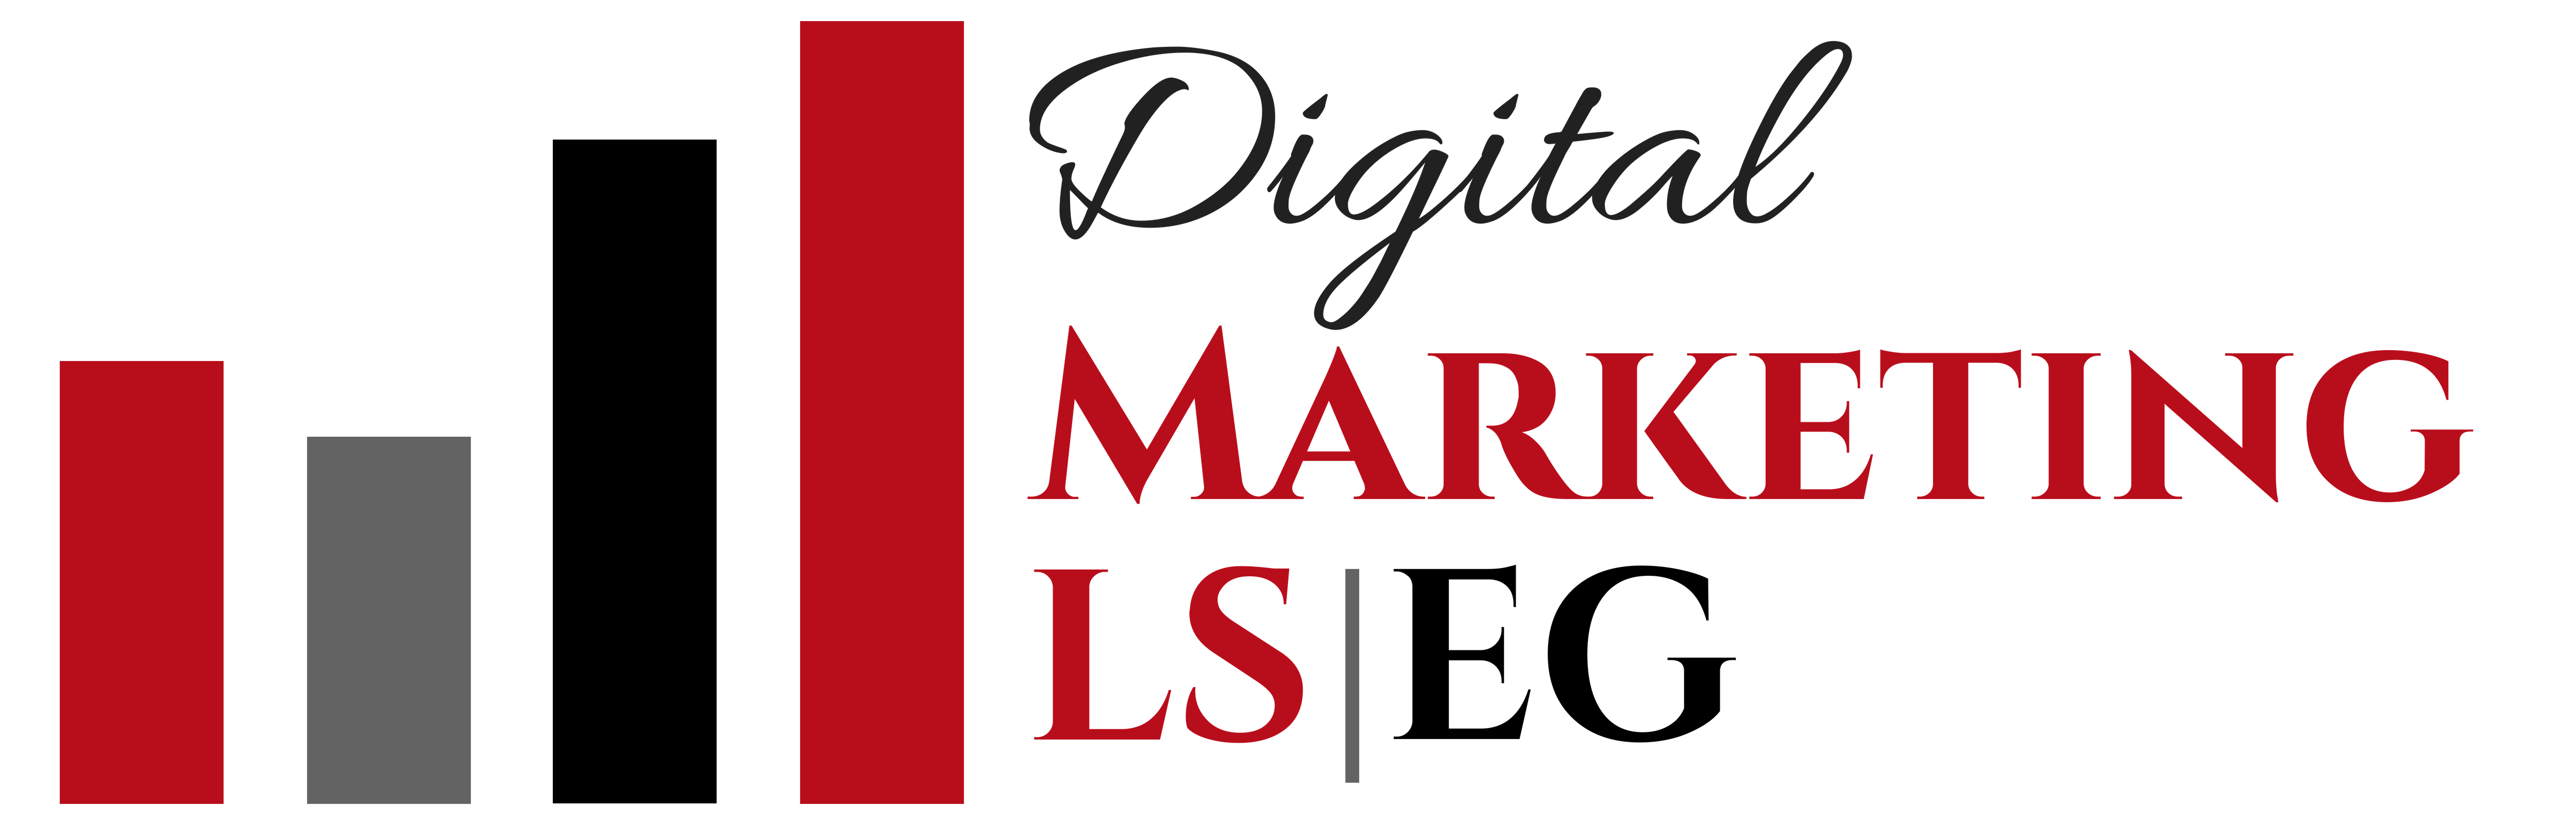 Digital Marketing LS|EG Workshops